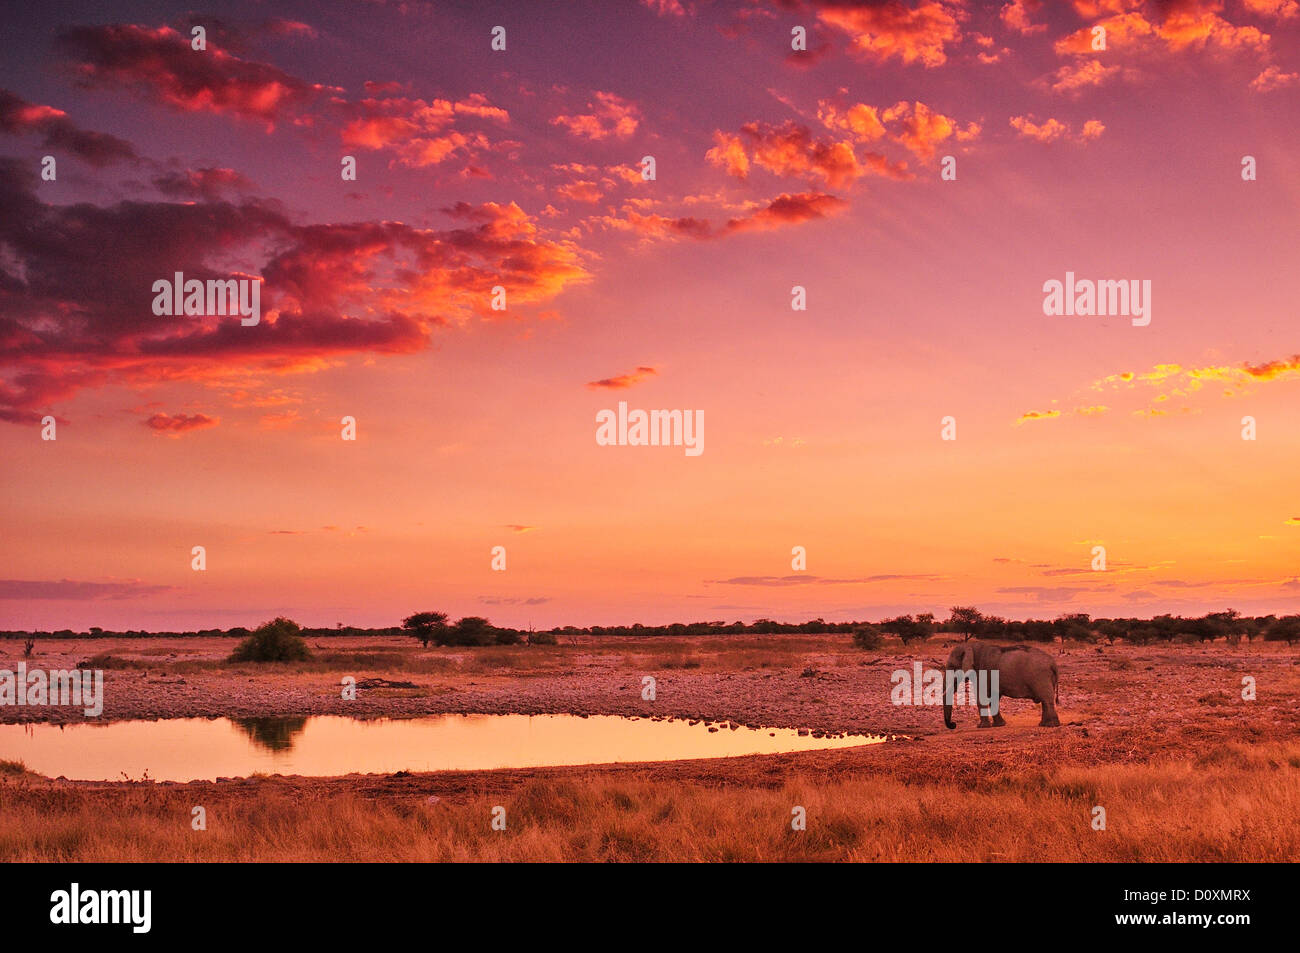 Africa, Namibia, Etosha, National Park, sunset, elephant, animal, waterhole, safari, animal, wildlife, red, Loxodonta - Stock Image